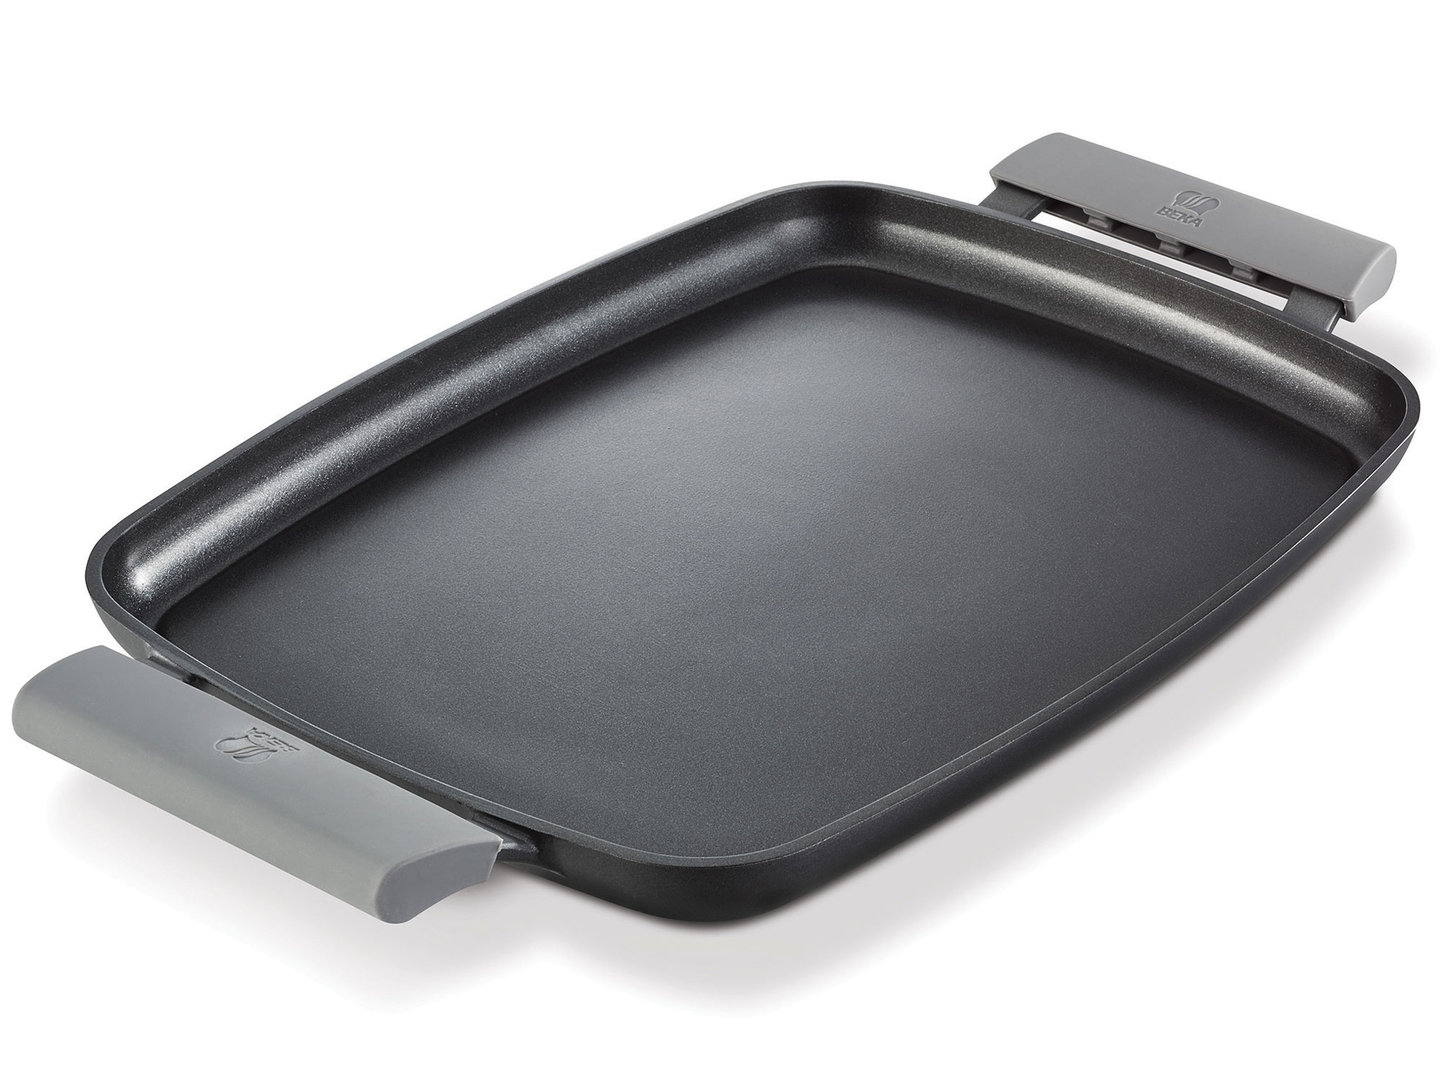 BEKA flat cast alu Teppanyaki griddle plate 47 cm with silicone handles induction